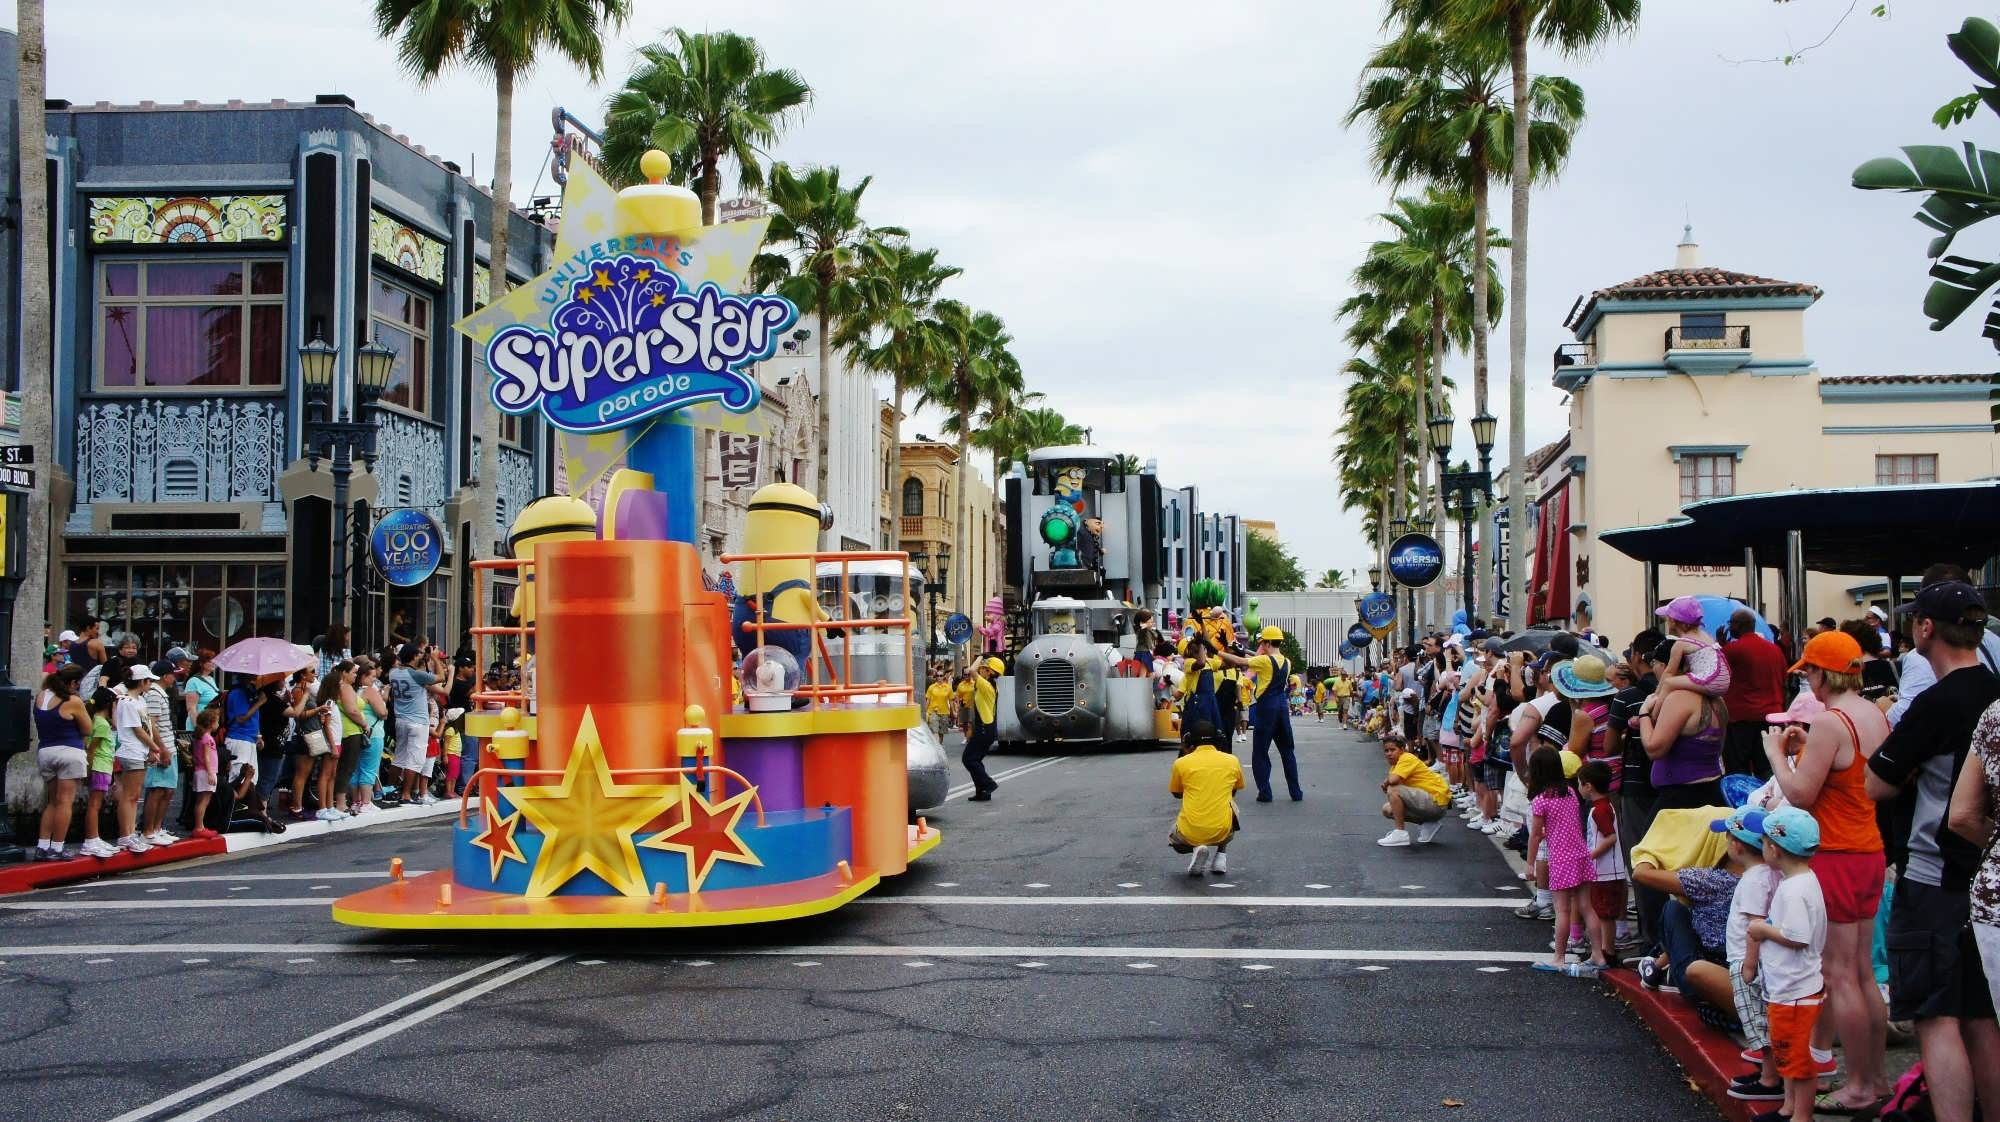 Universal's Superstar Parade at Universal Studios Florida